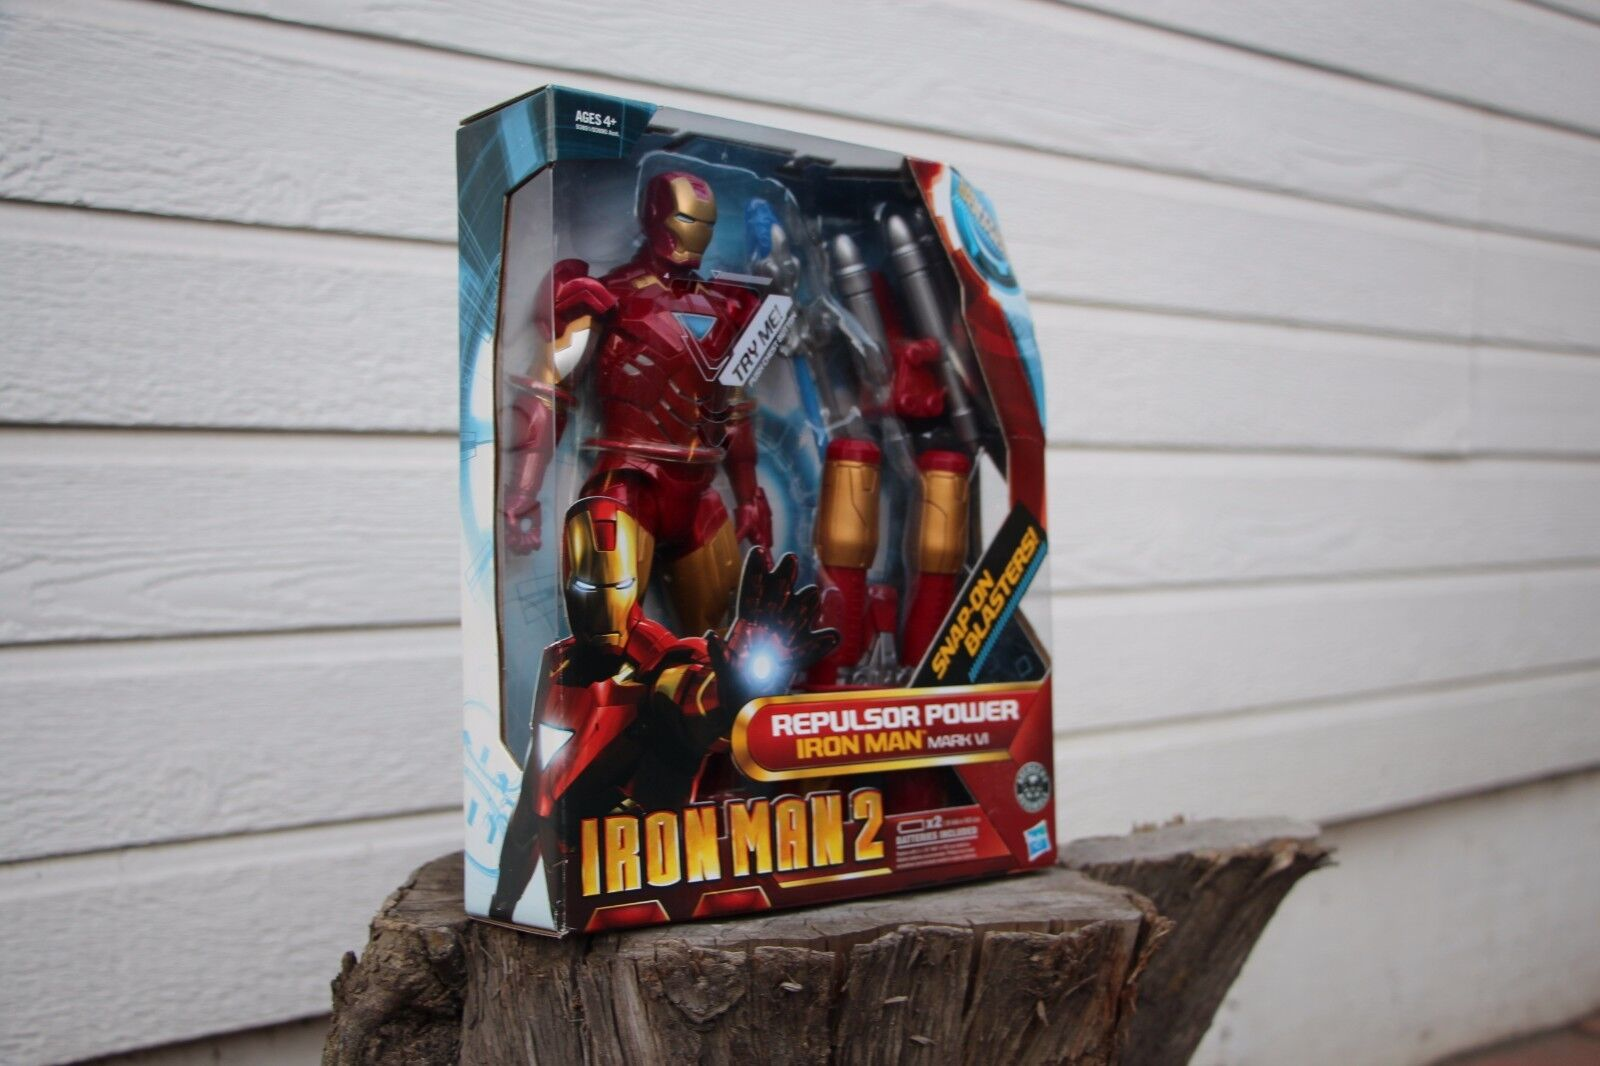 Hasbro  iron man 2  repulsor macht iron man mark vi, 10  - figur, 2010